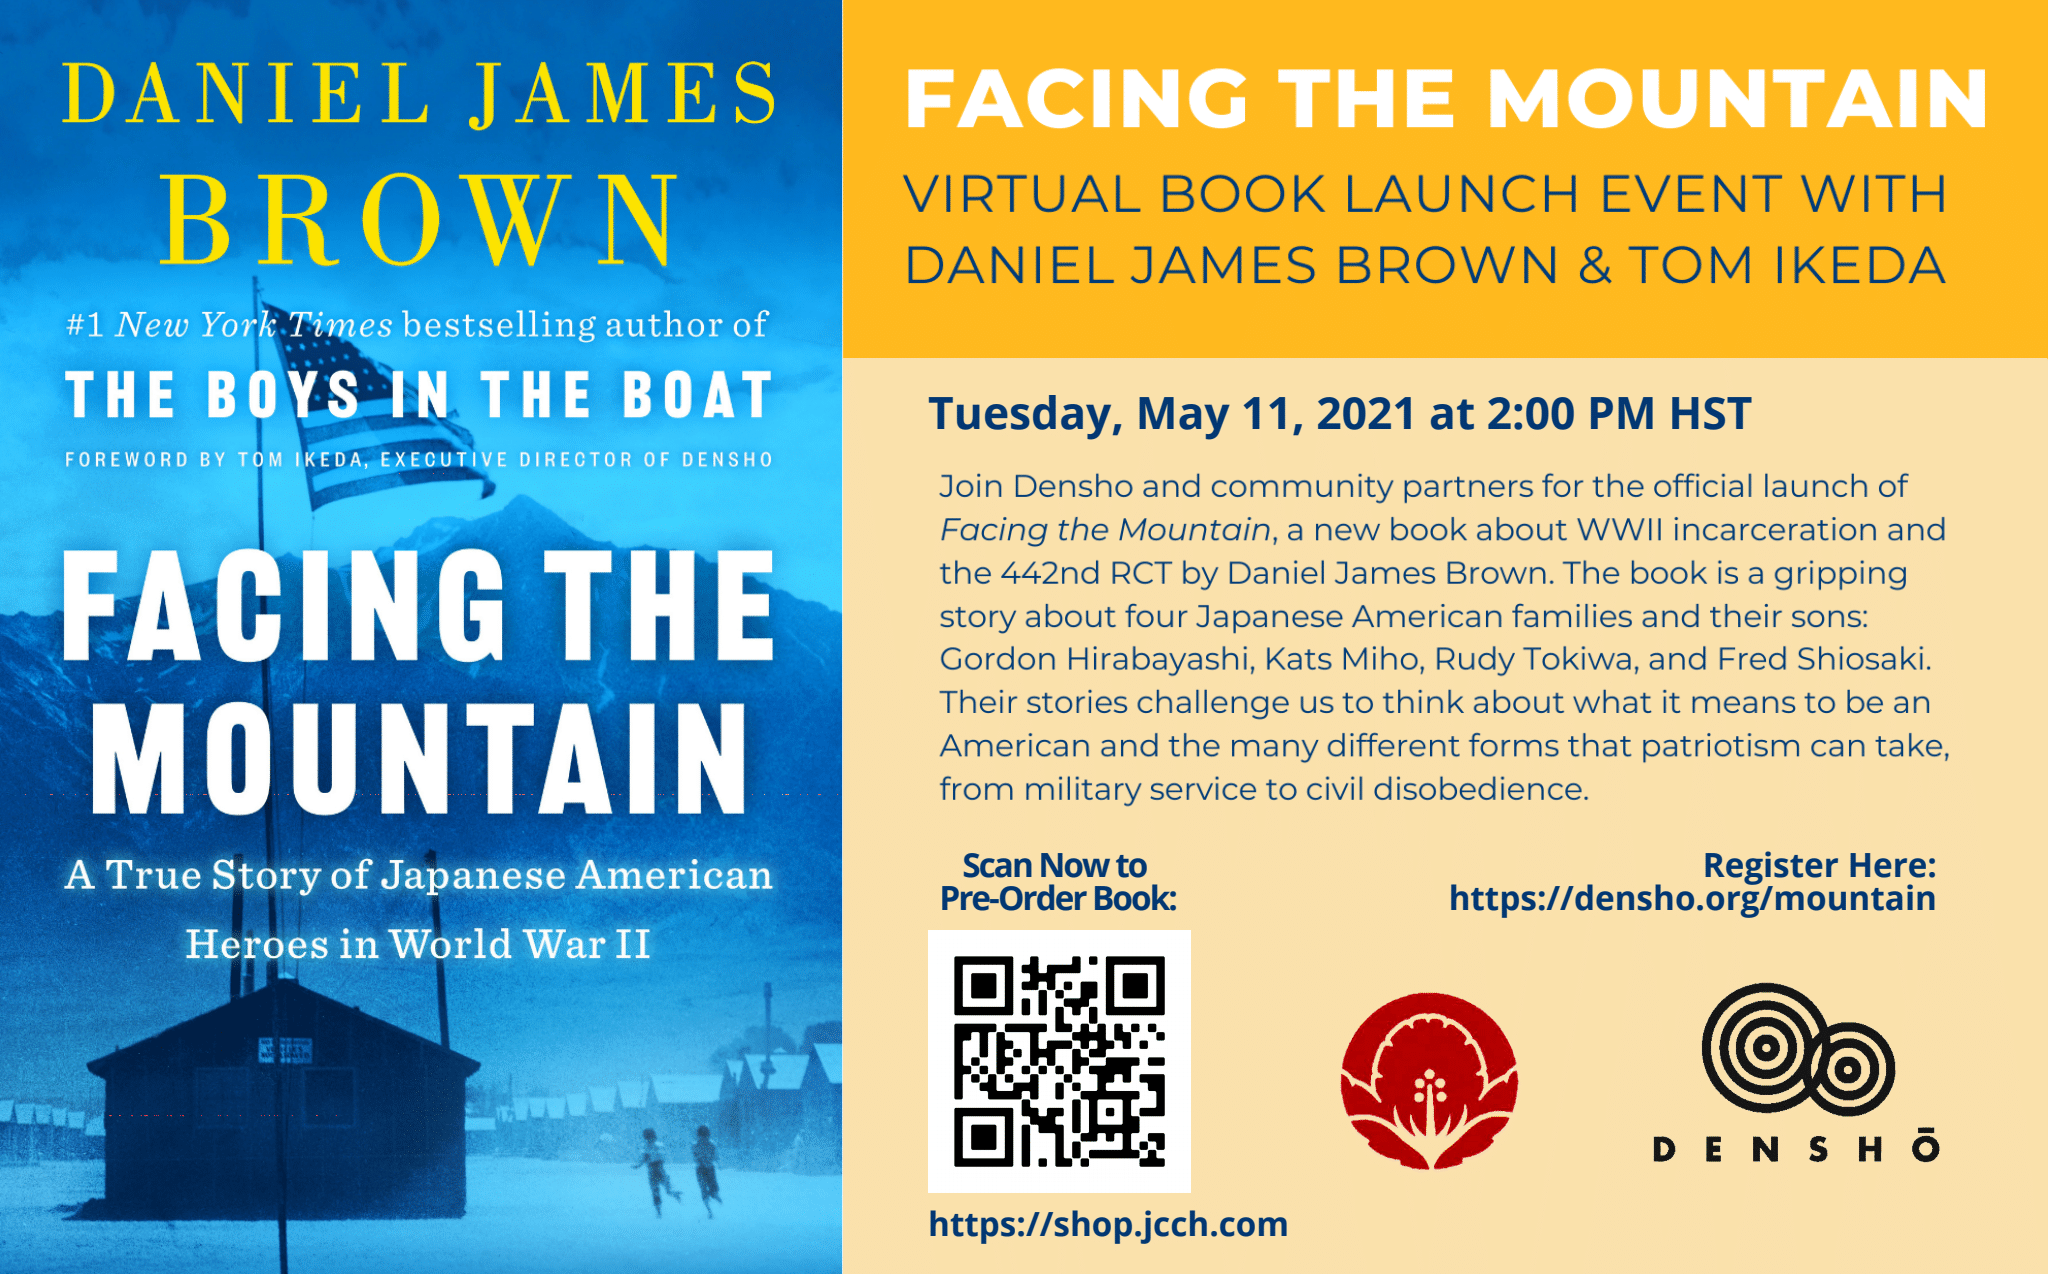 virtual book launch event with daniel james brown and tom ikeda